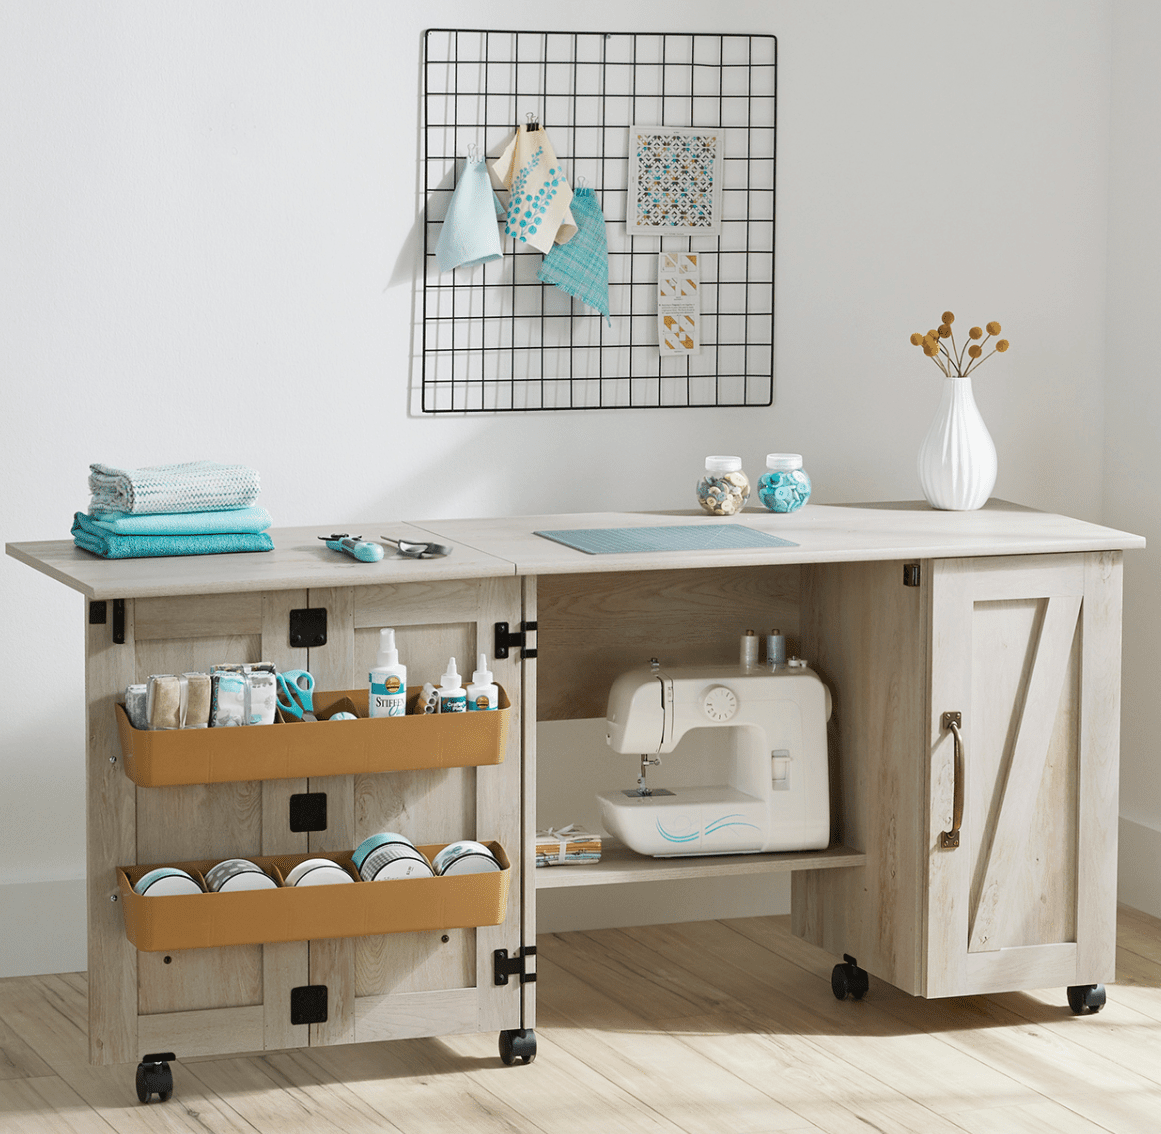 Better Homes & Gardens Modern Farmhouse Sewing Table